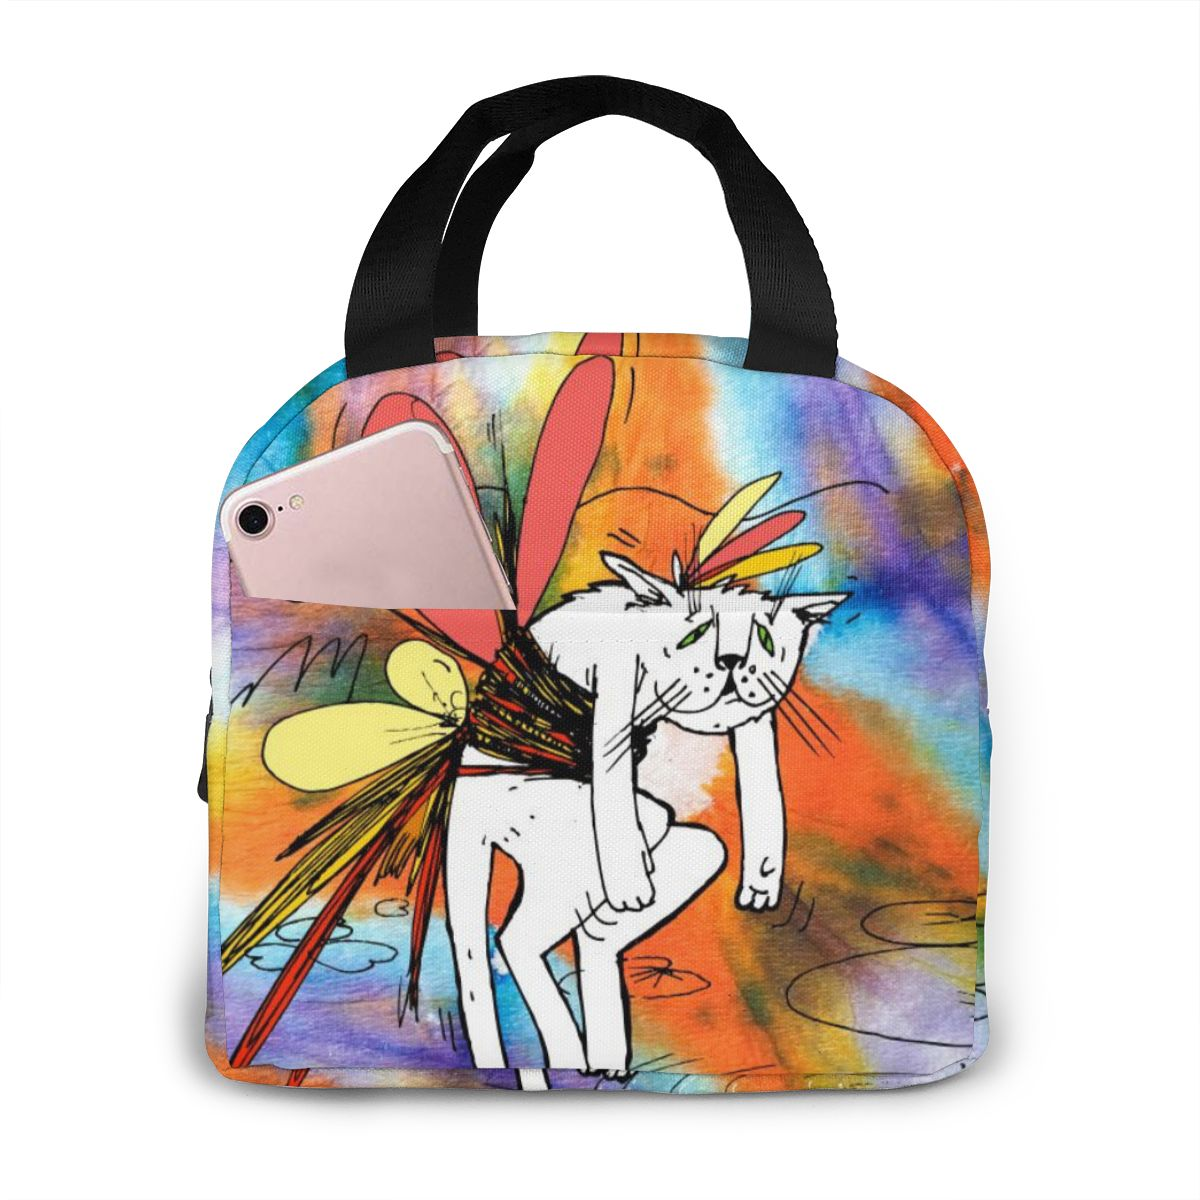 NOISYDESIGNS Insulated Lunch Bag Thermal Graffiti Cats Cute Tote Bags Cooler Picnic Food Lunch Box For Kids Women Girls Ladies